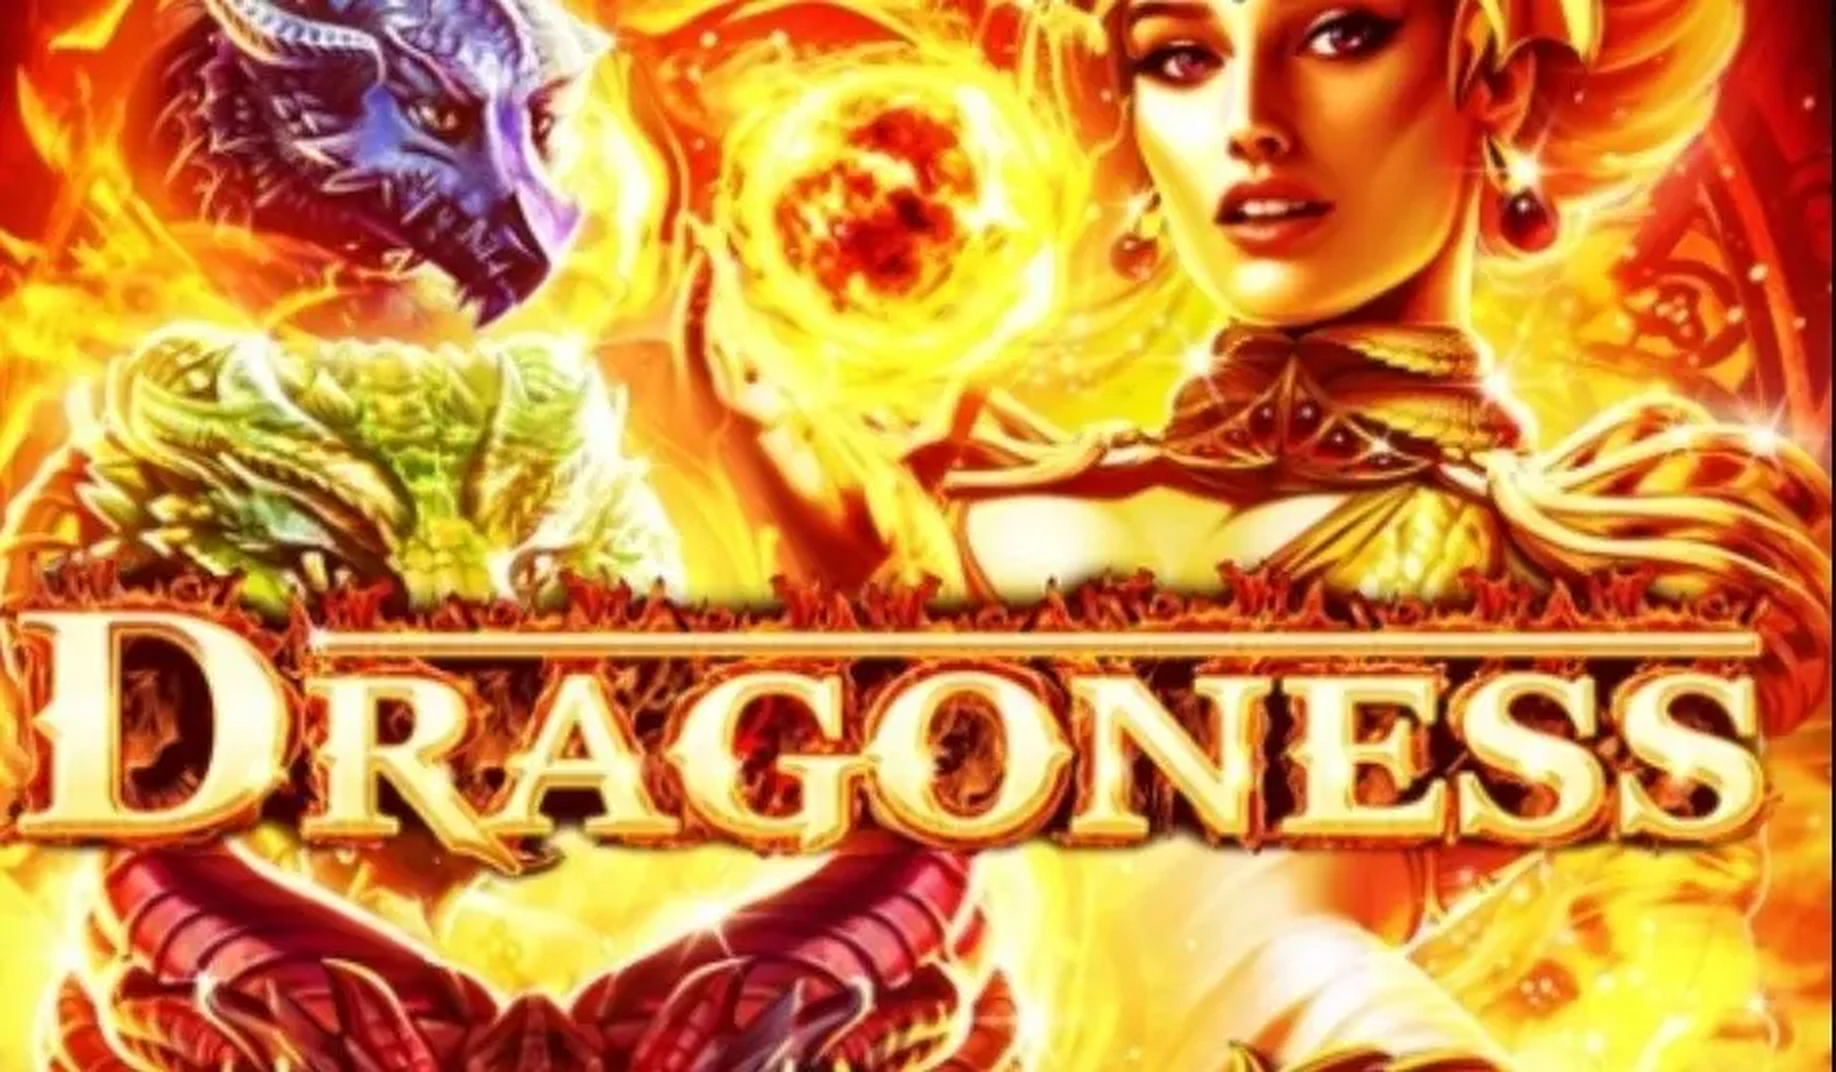 The Dragoness Online Slot Demo Game by Ruby Play